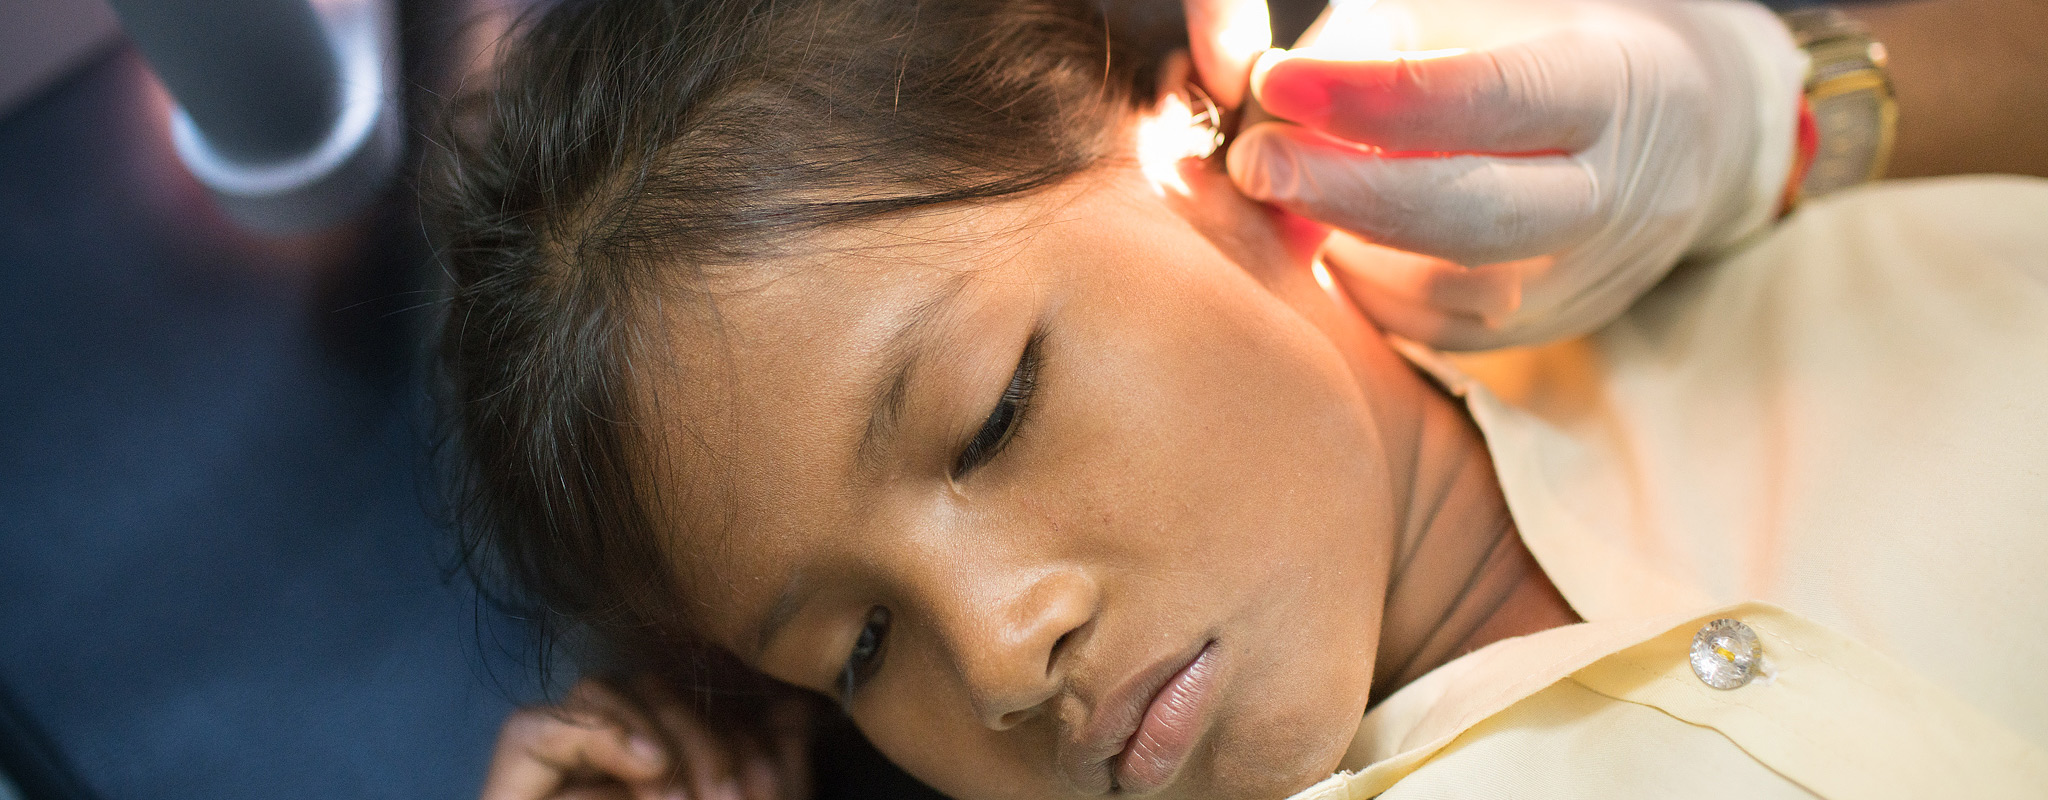 audiological-care-changing-22000-lives-every-year-Cambodia-Hear-the-World-Foundation-02